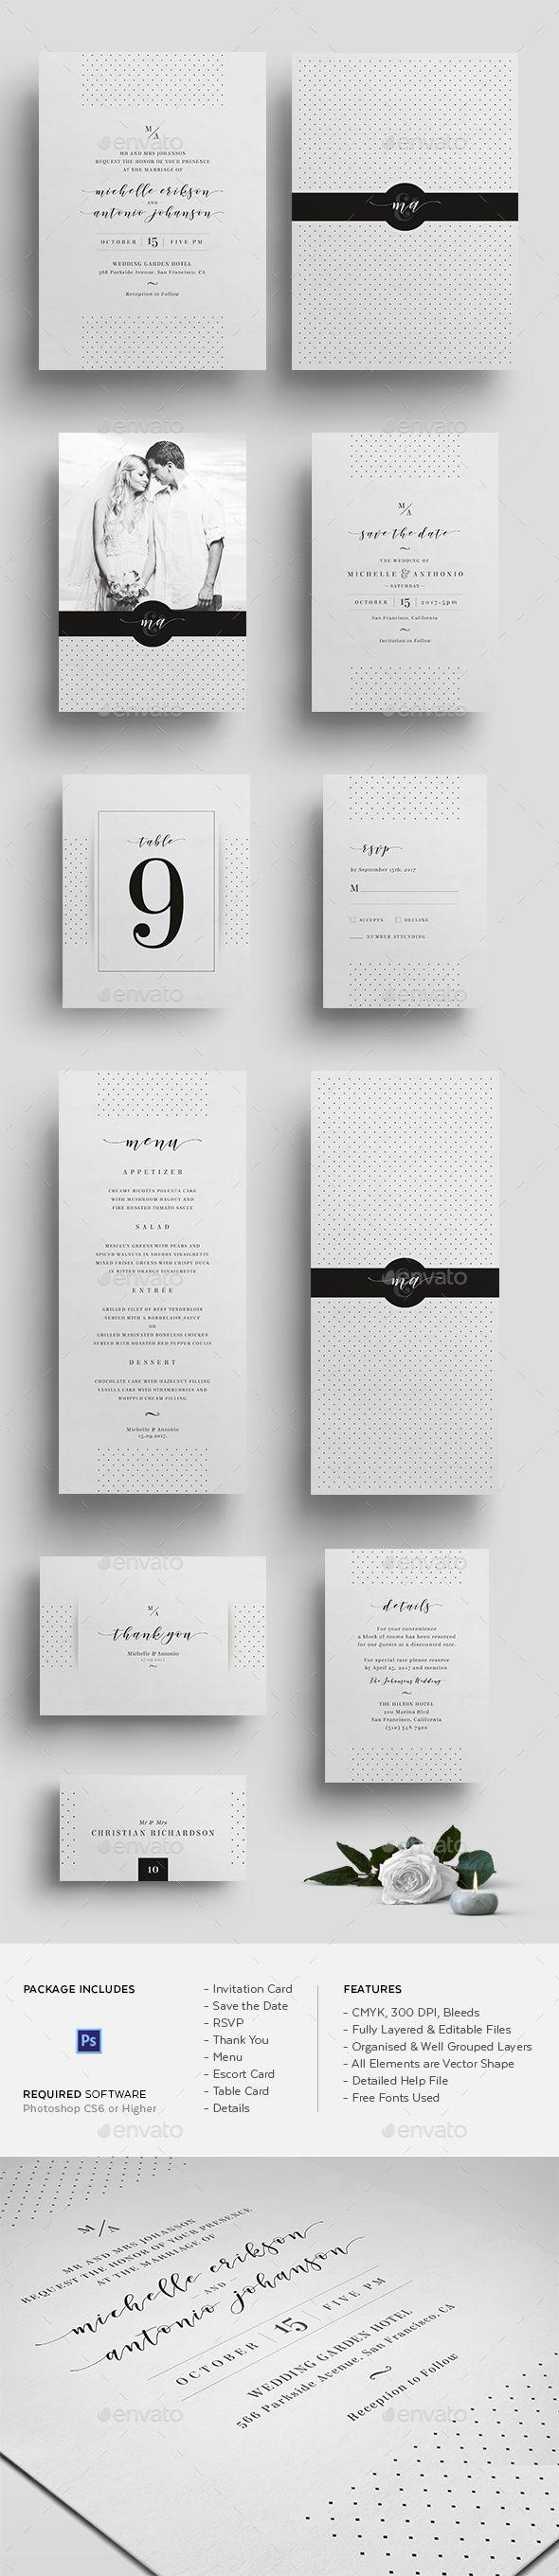 238 best Wedding Invitation Templates images on Pinterest | Font ...